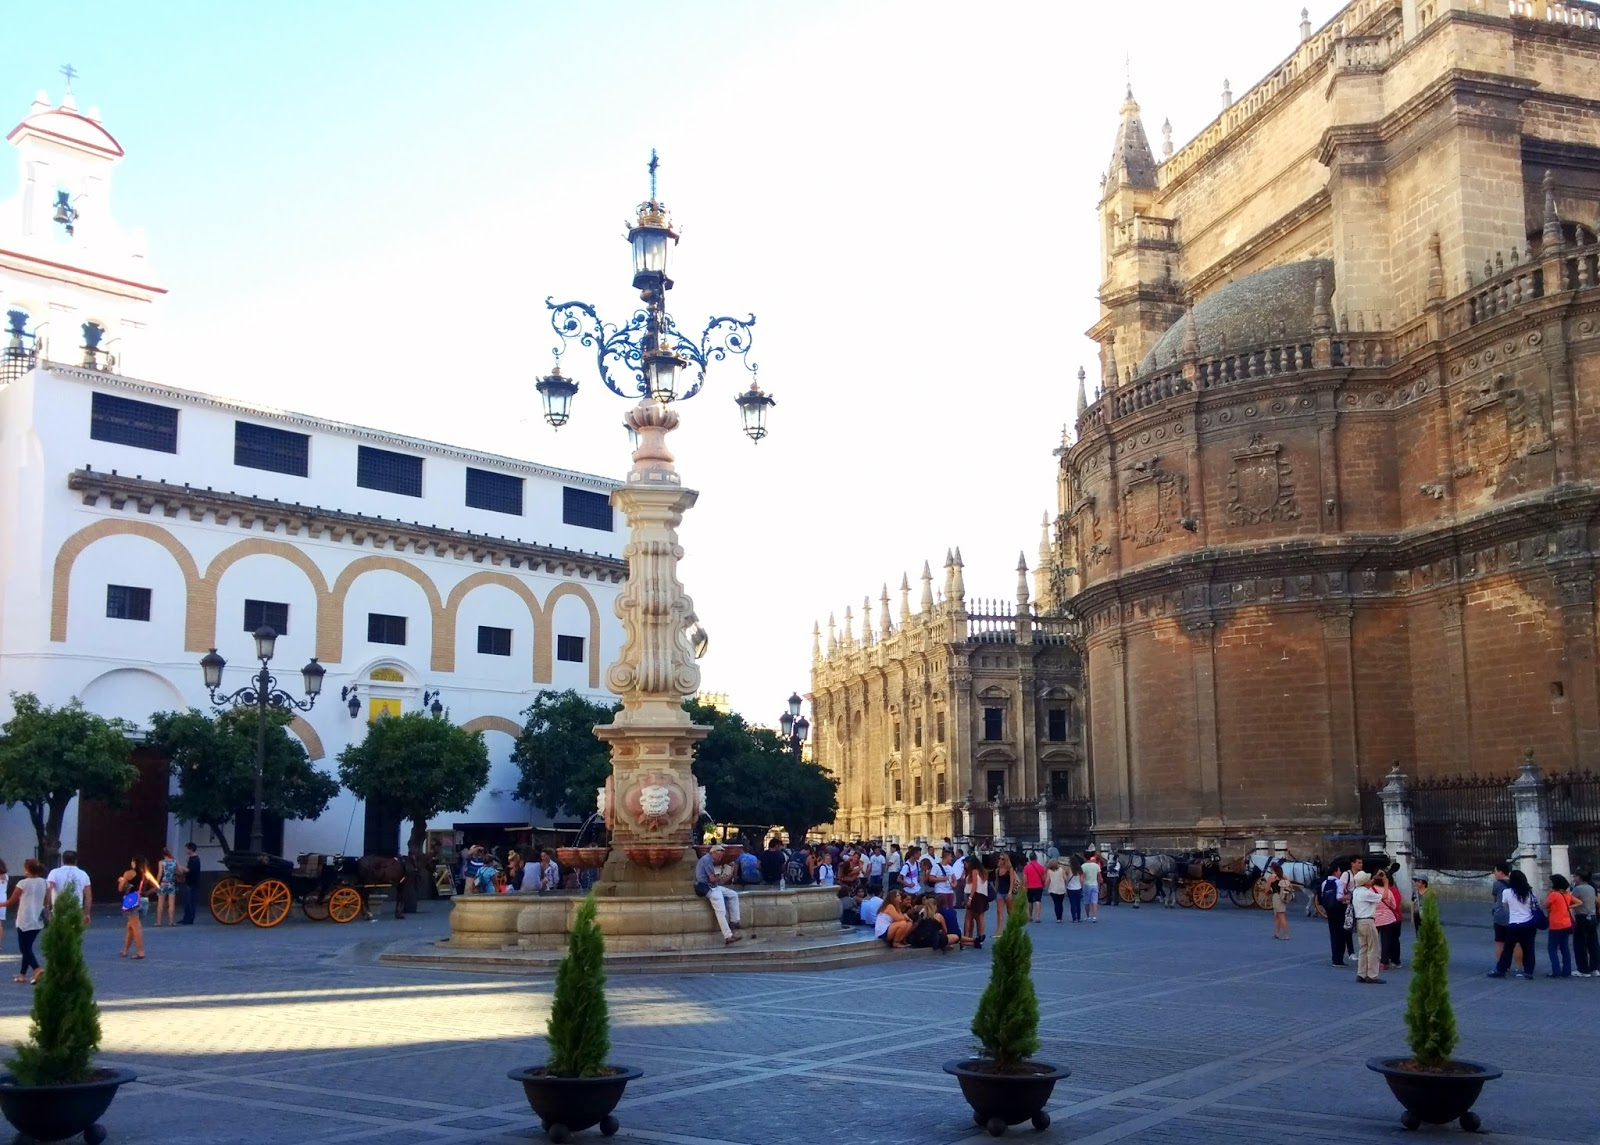 Plaza de Santa Maria / Cathedral of Seville /  Catedral de Sevilla  |  Postcard from Andalucía: Sevilla  on afeathery*nest  |  http://afeatherynest.com